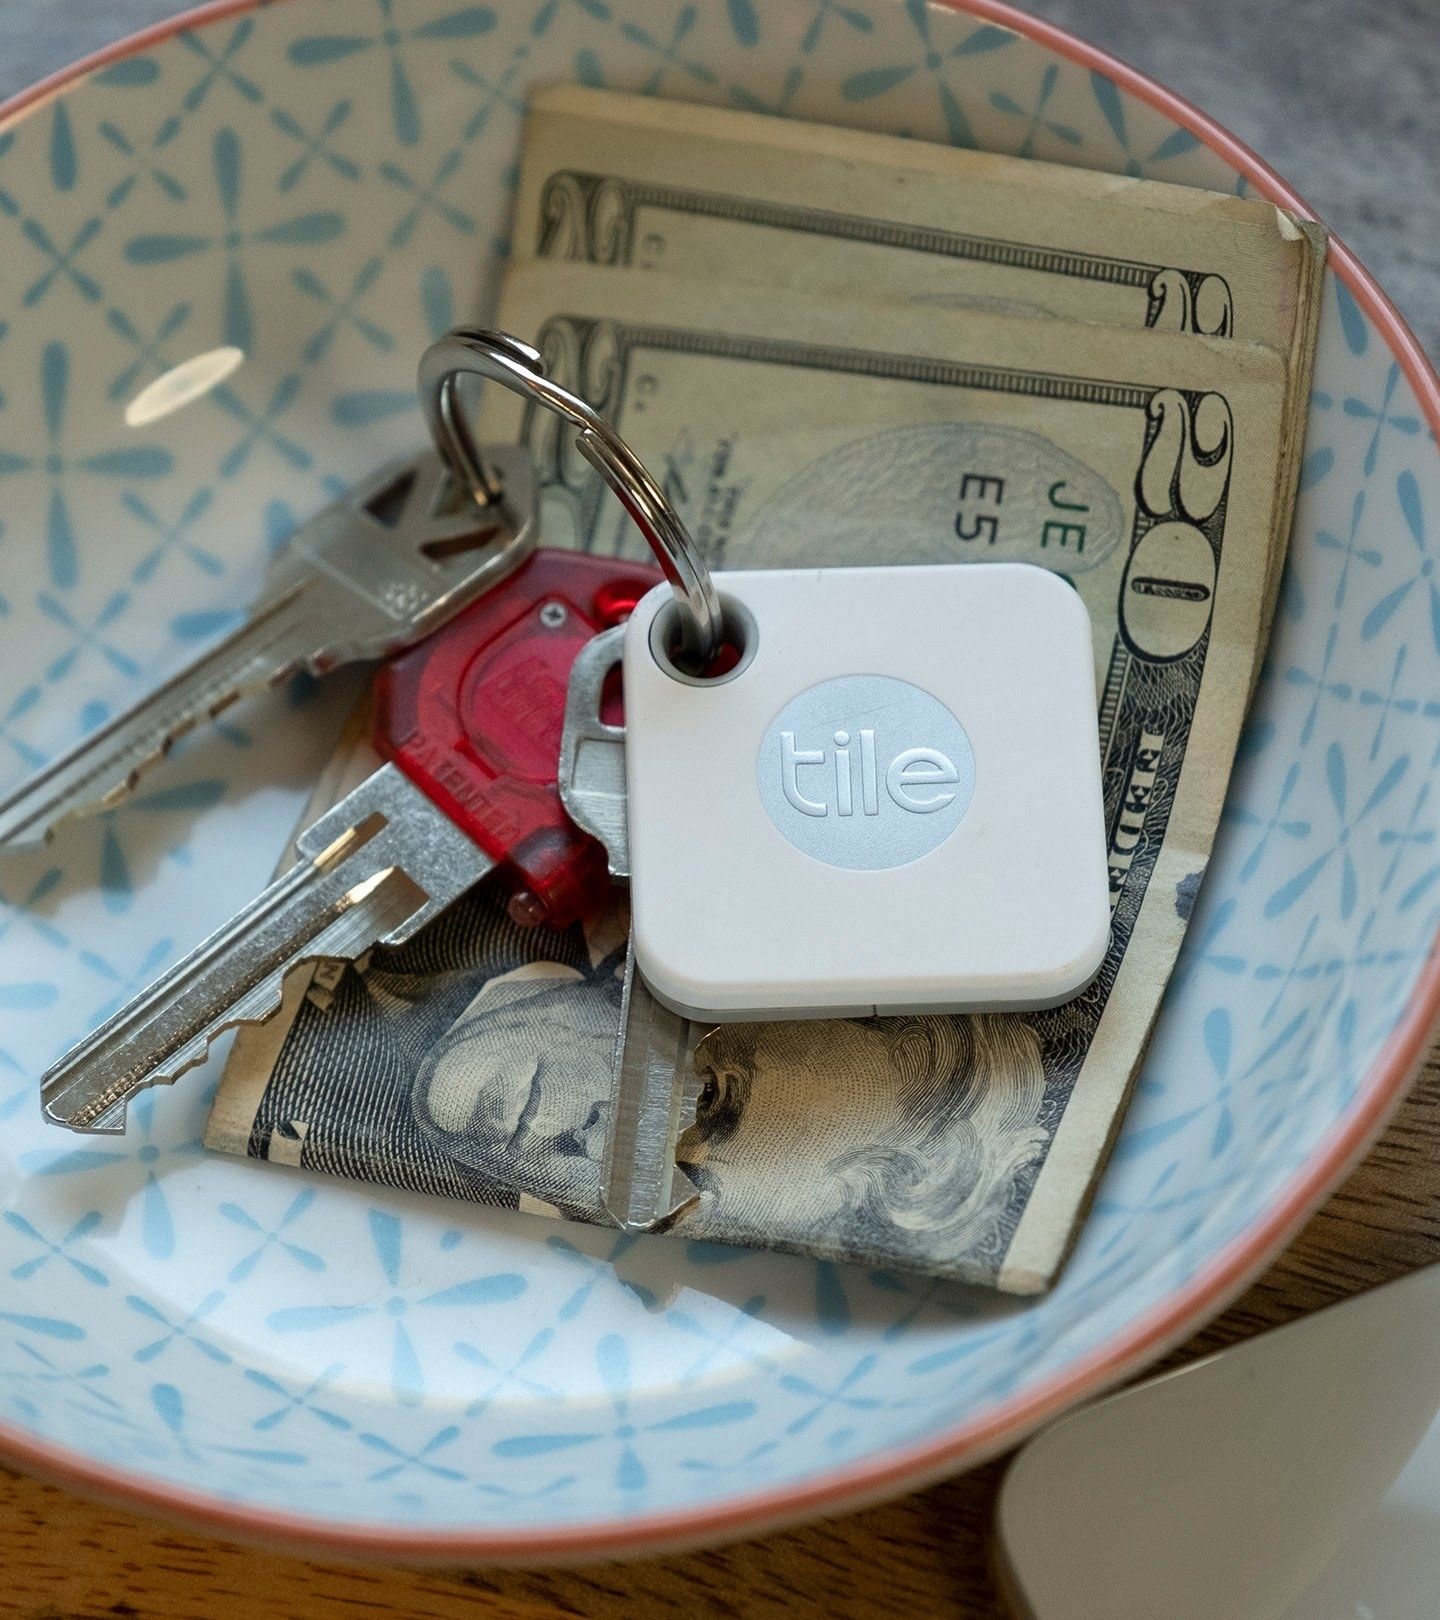 Tile tracker attached to keys in a dish with money